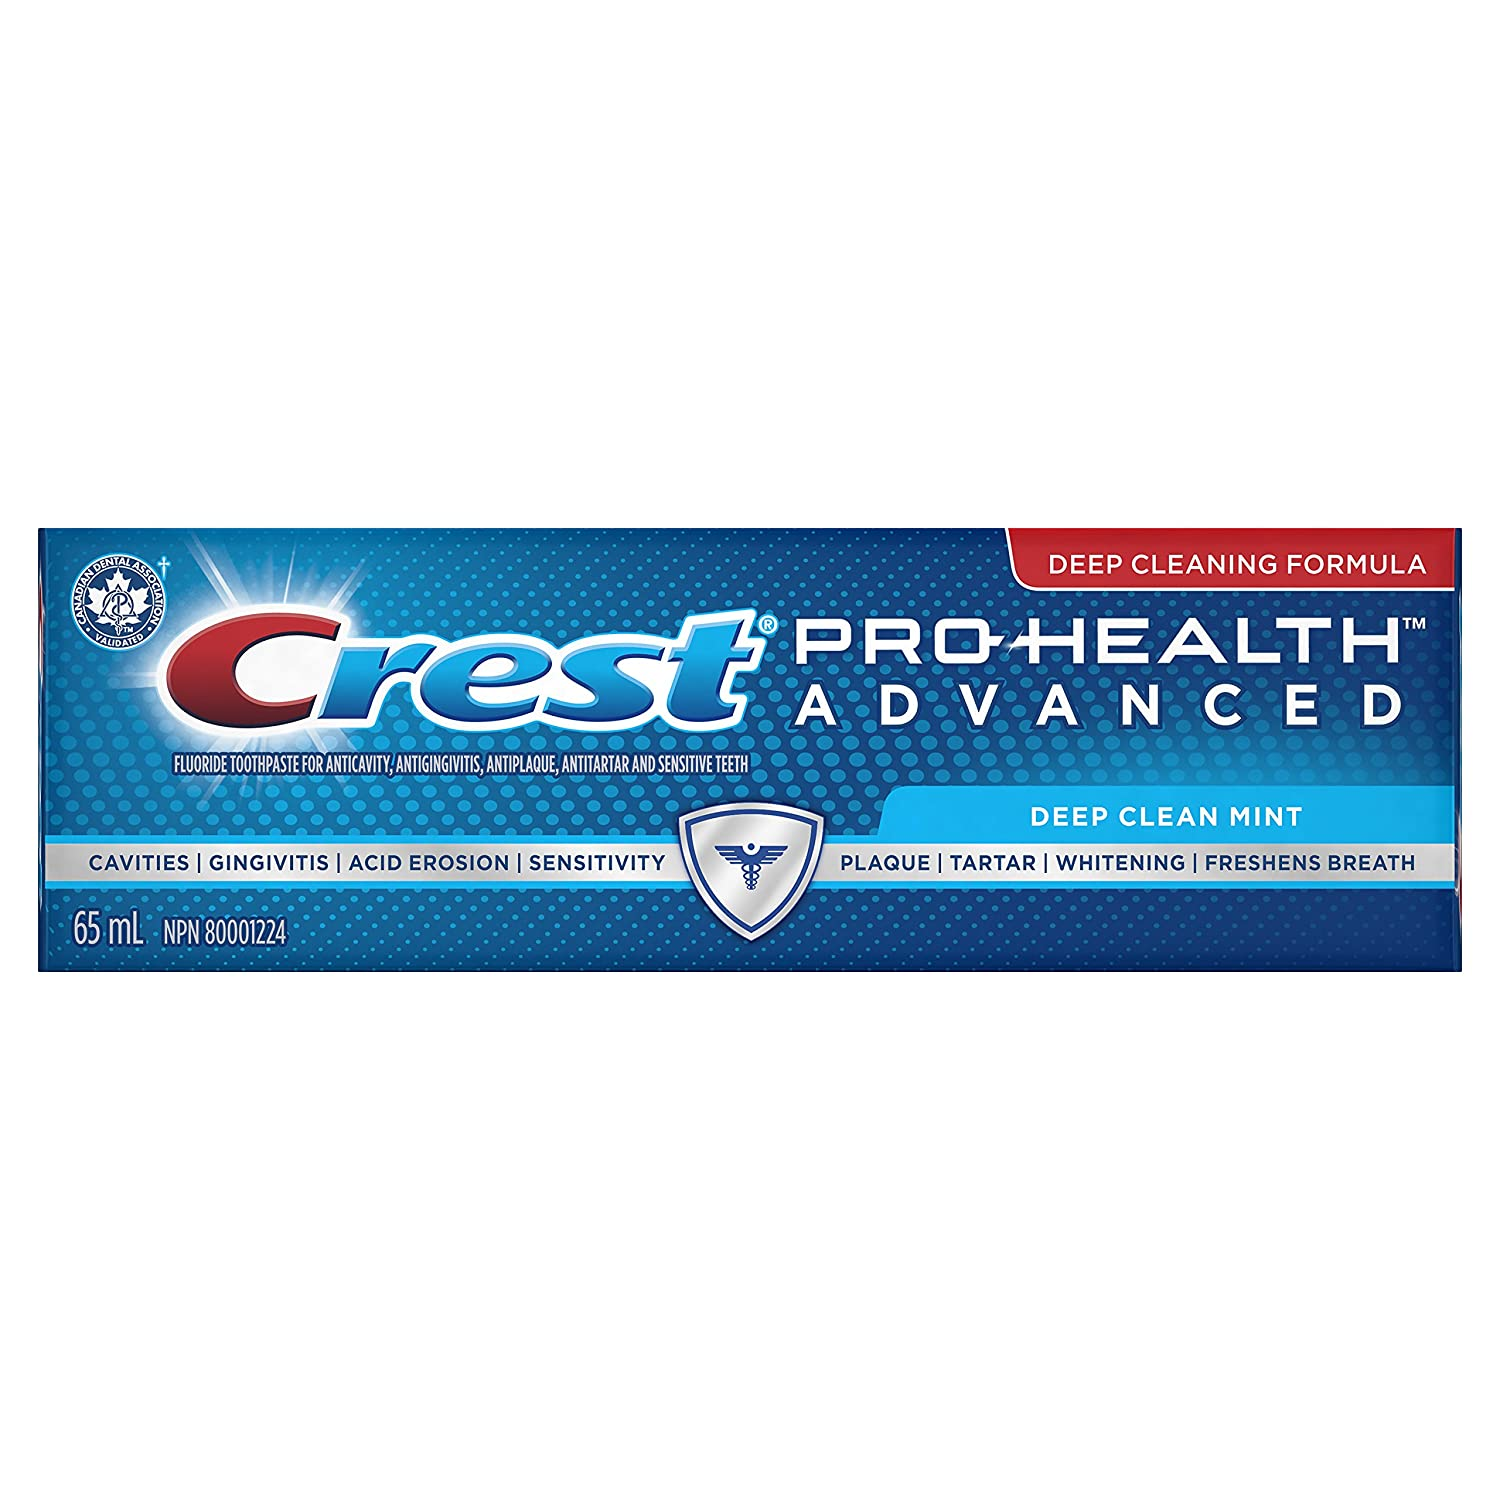 Crest Pro-Health Advanced Deep Clean Mint Toothpaste - 90 ml Procter and Gamble